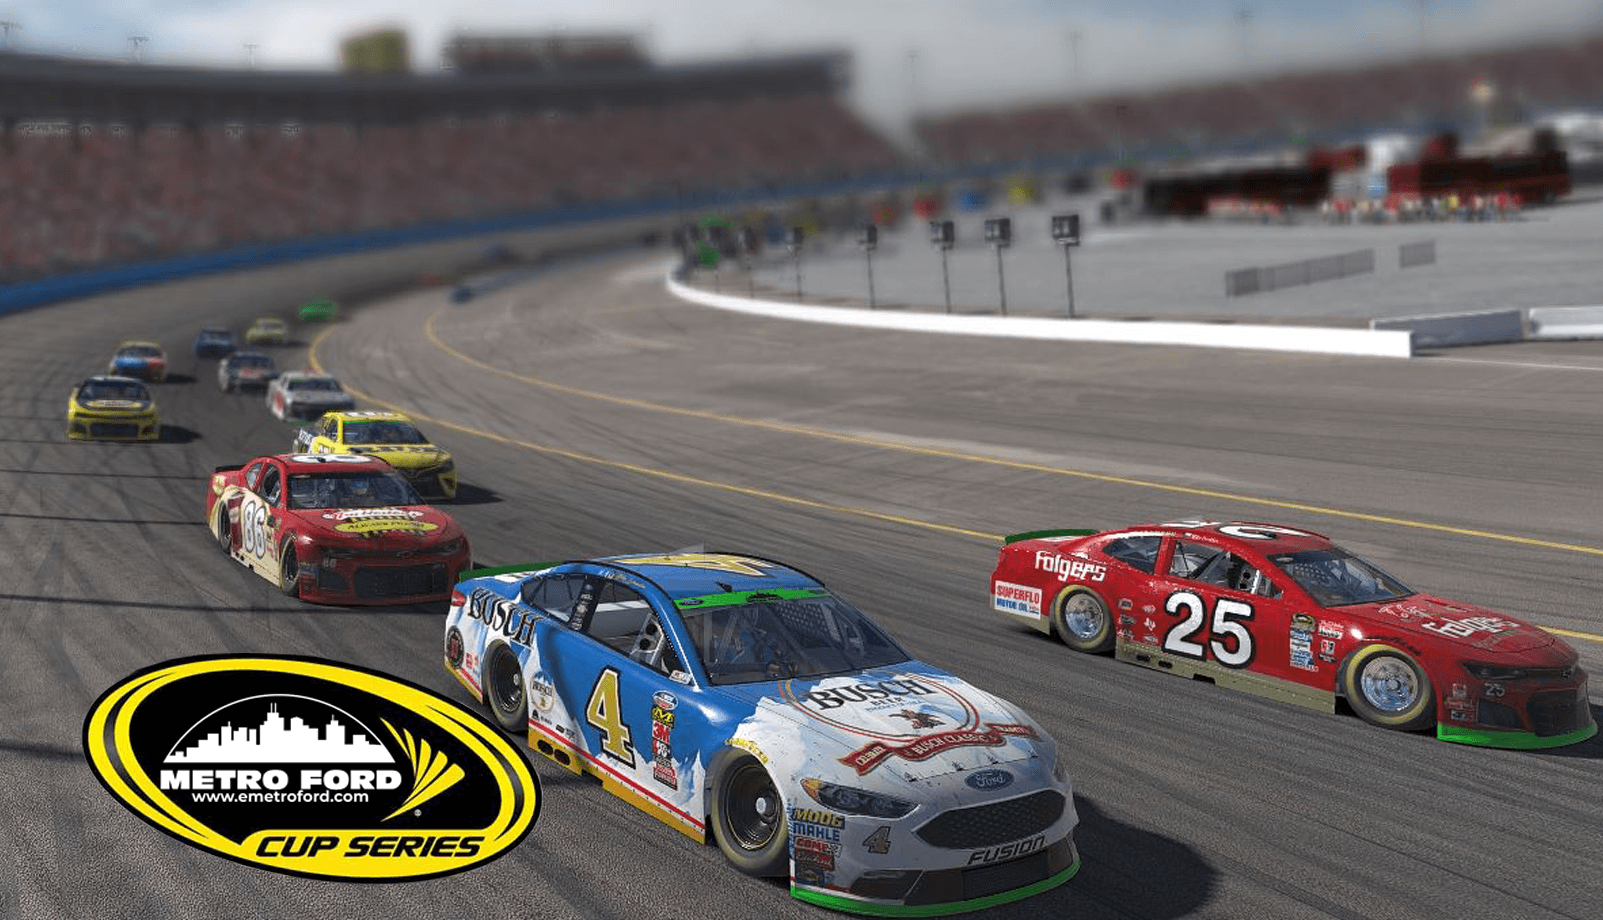 Nascar Metro Ford Cup Senior Tour Schedule